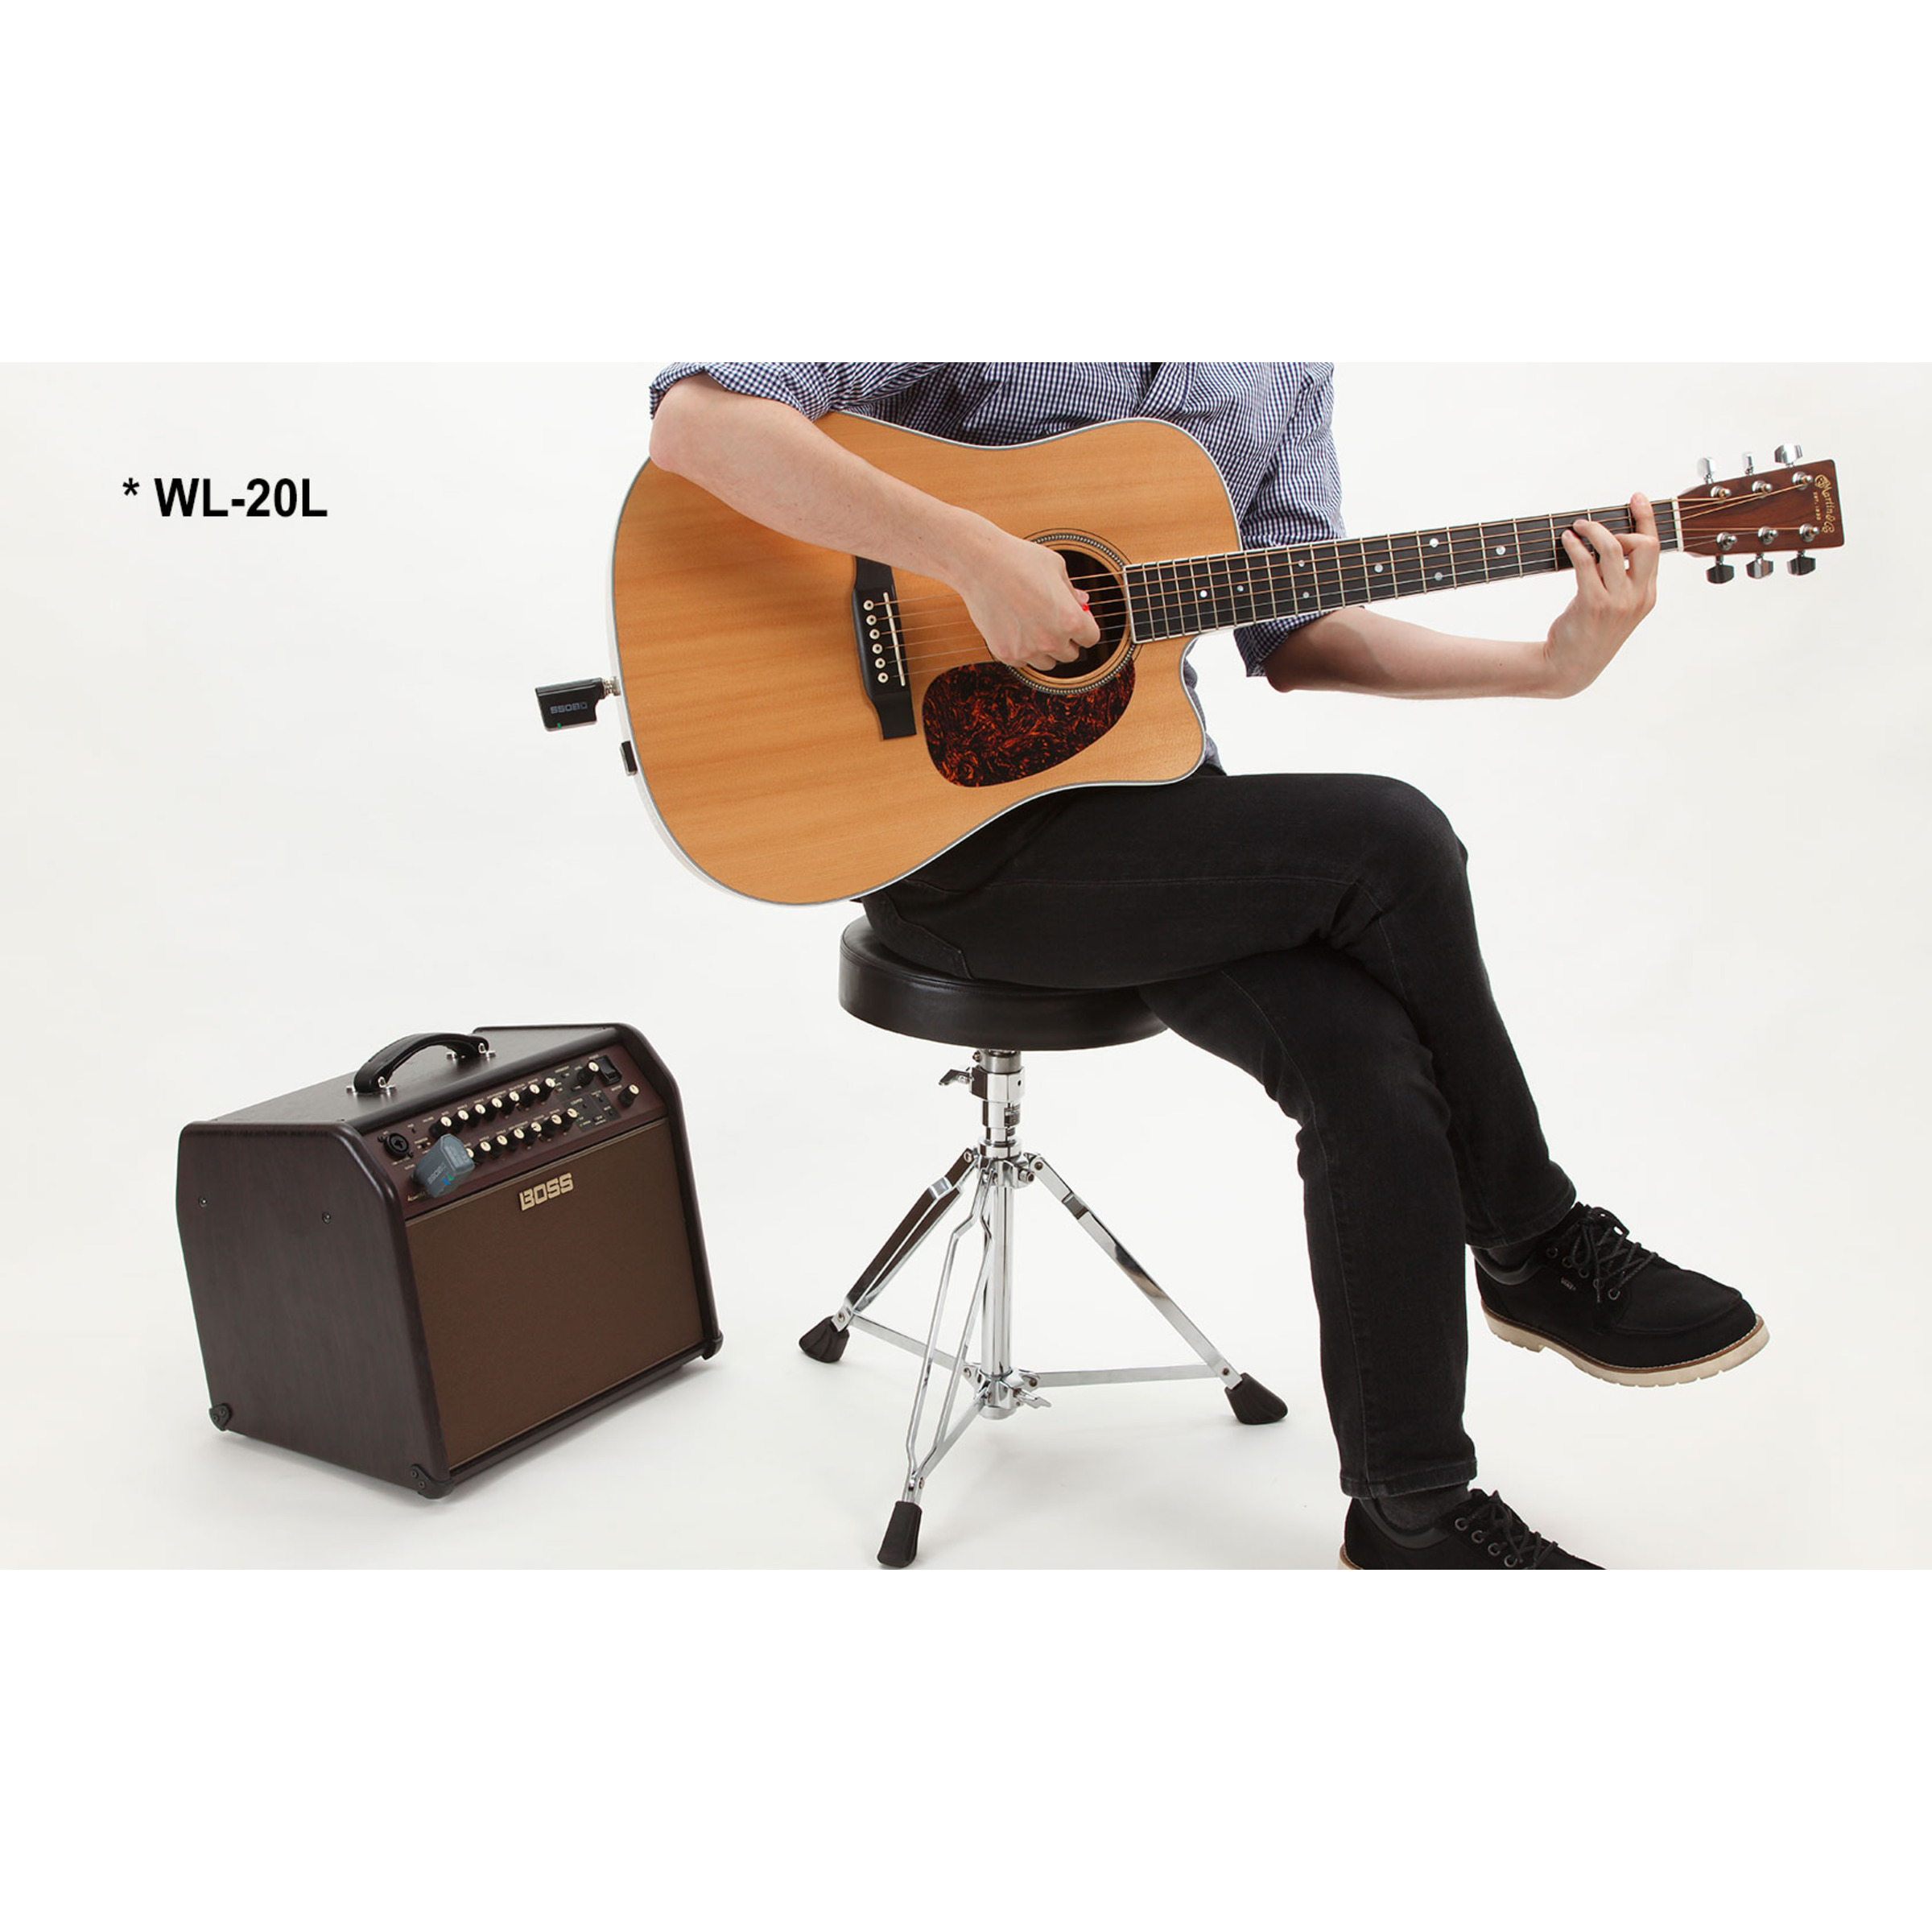 boss wl20l compact wireless guitar system for active pickups electro acoustics giggear